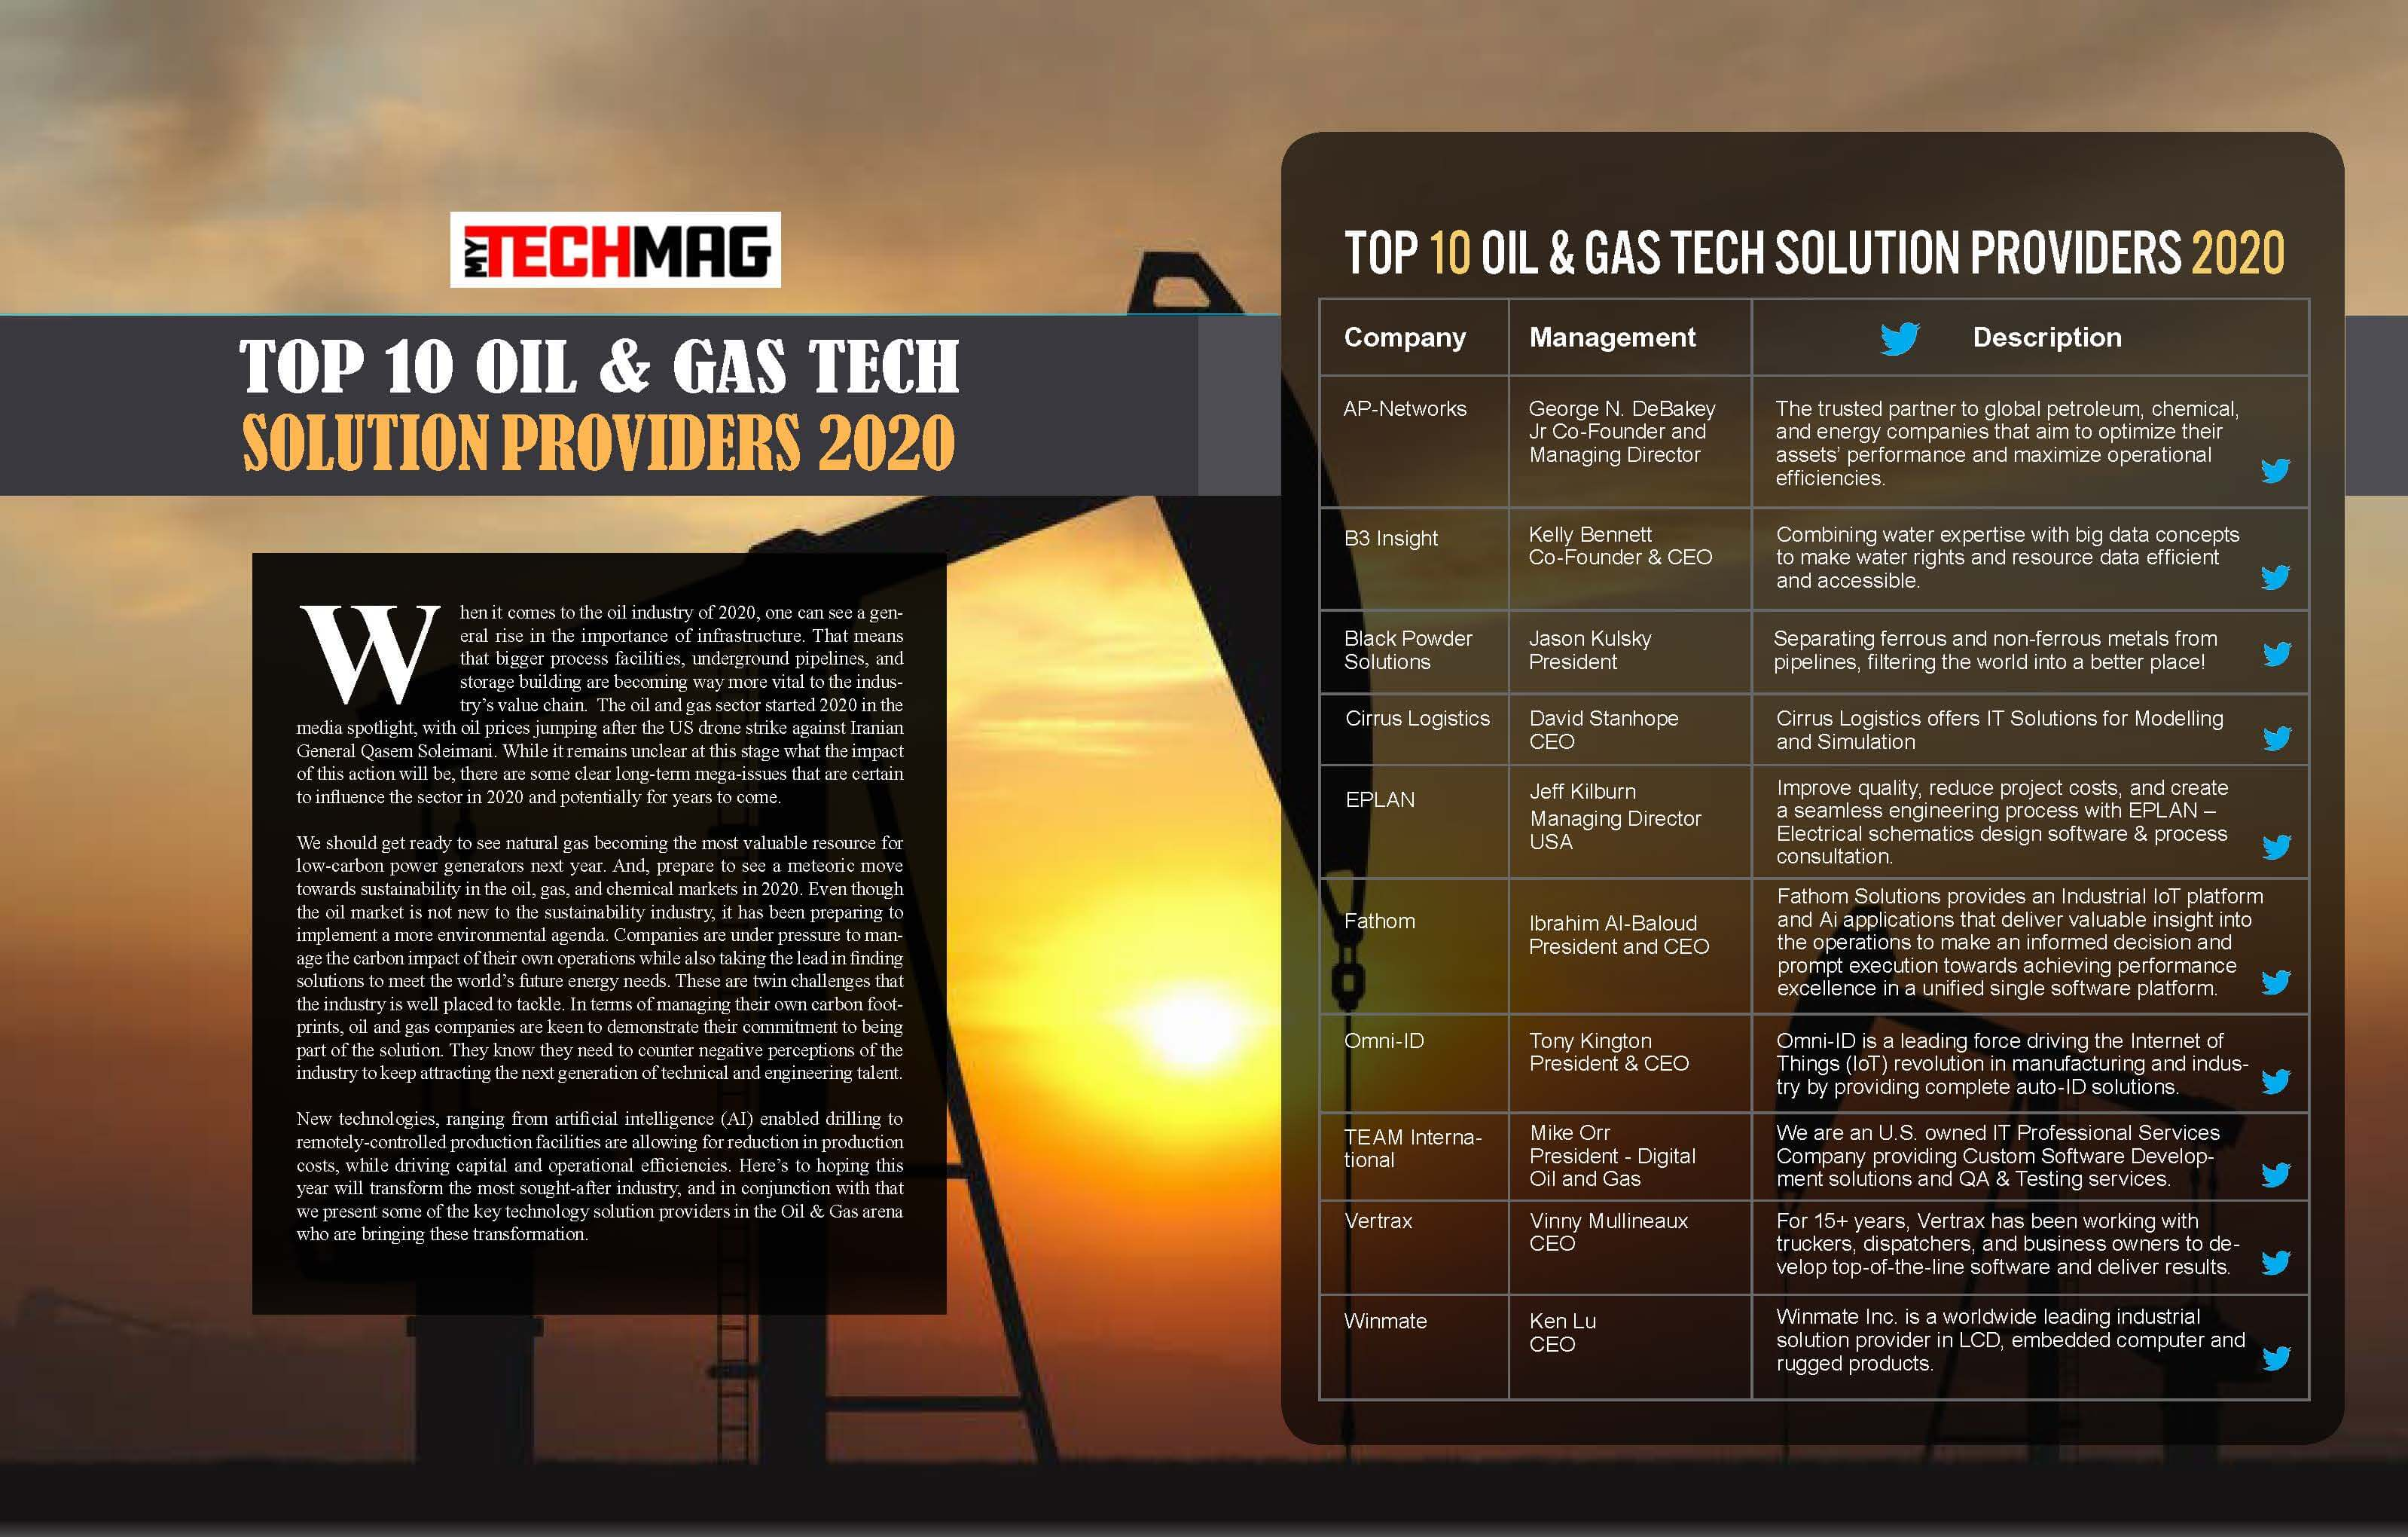 Top 10 Oil & Gas Tech Solution Providers 2020